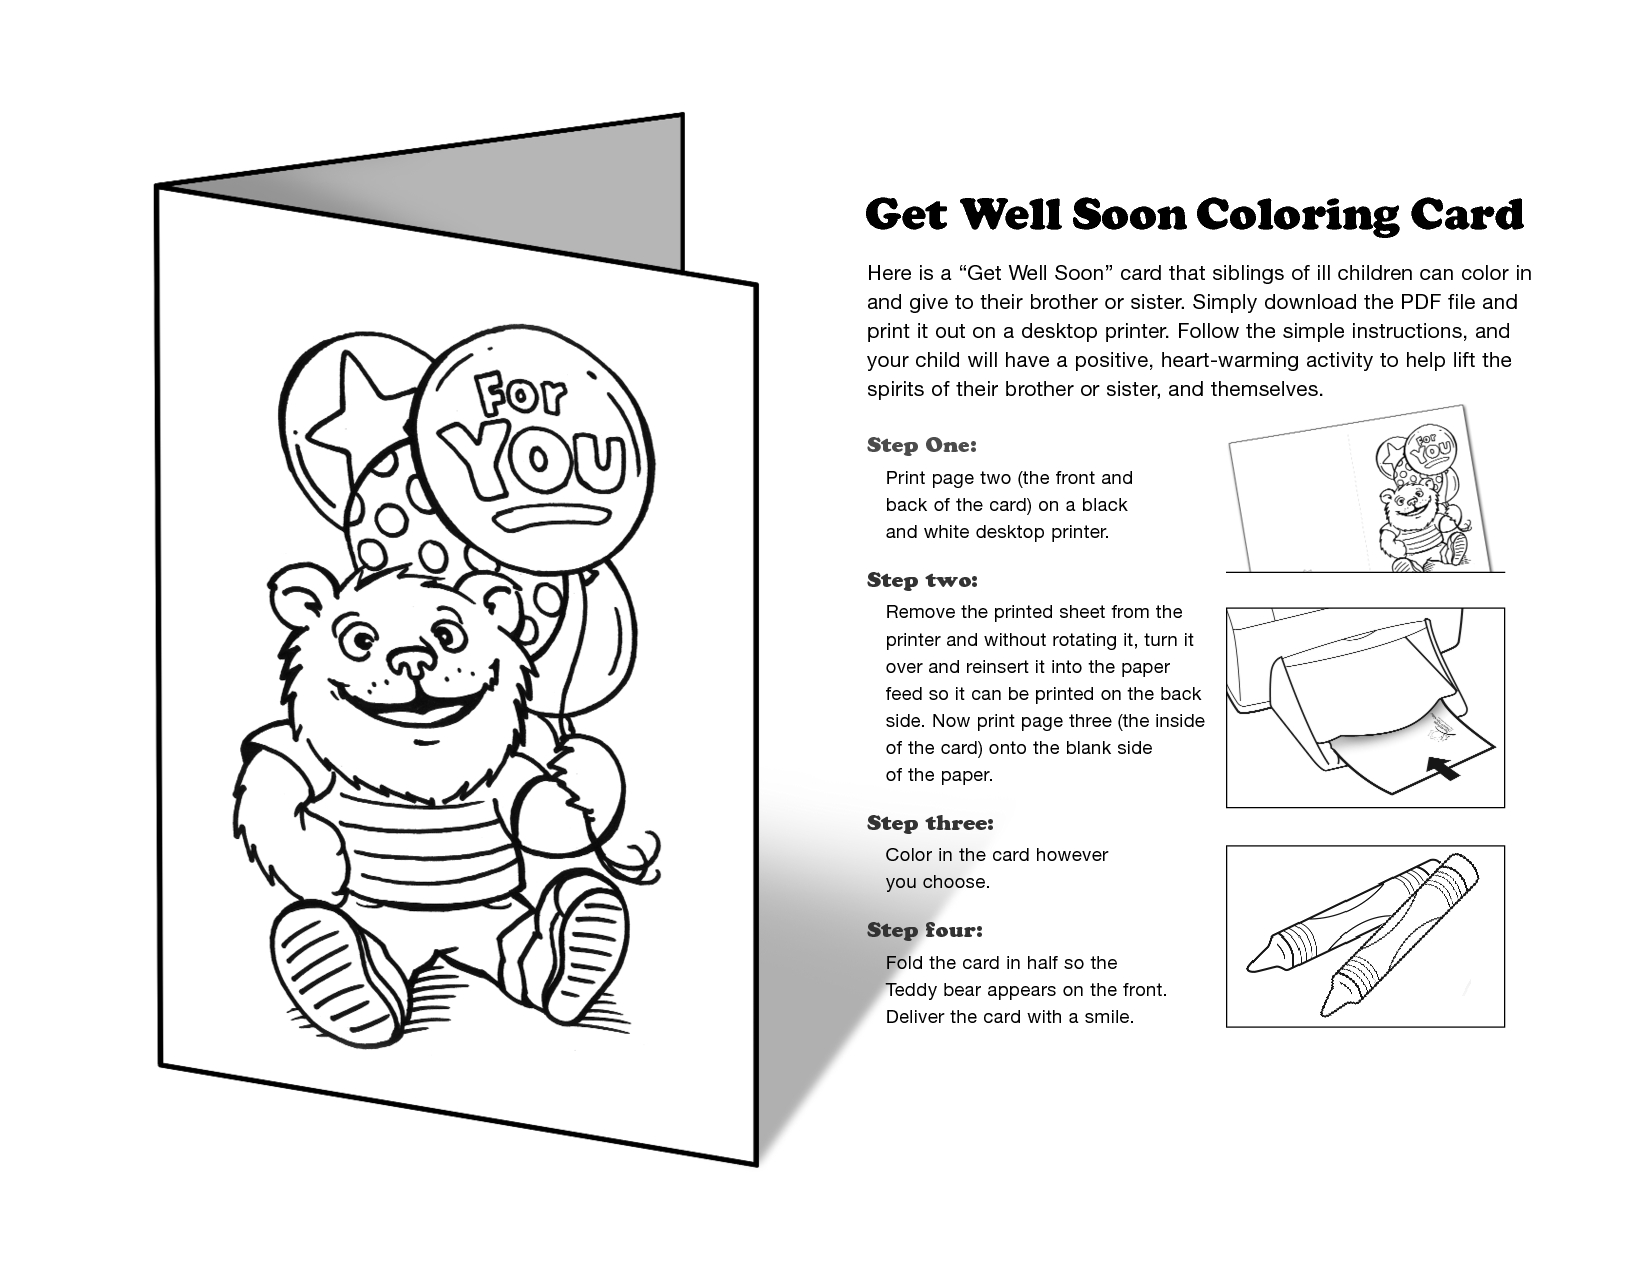 Free Printable Get Well Cards To Color - Printable Cards - Free Printable Get Well Card For Child To Color